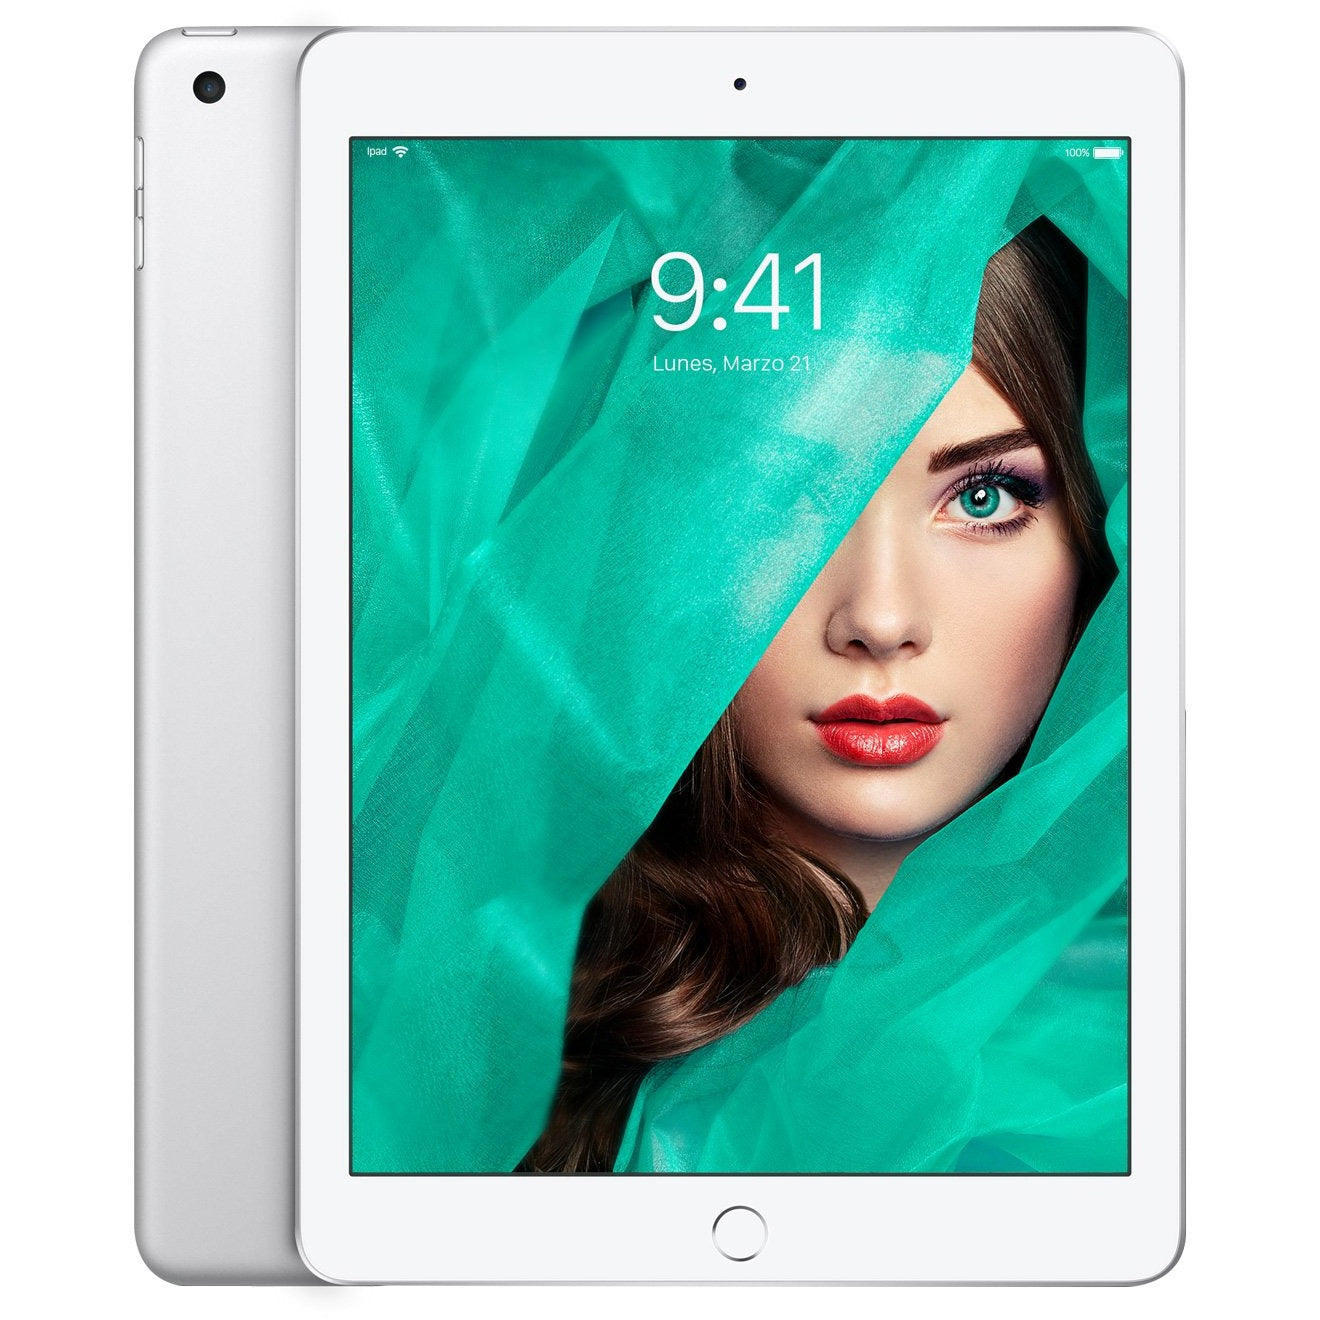 Apple iPad 128GB Wi-Fi - Plata